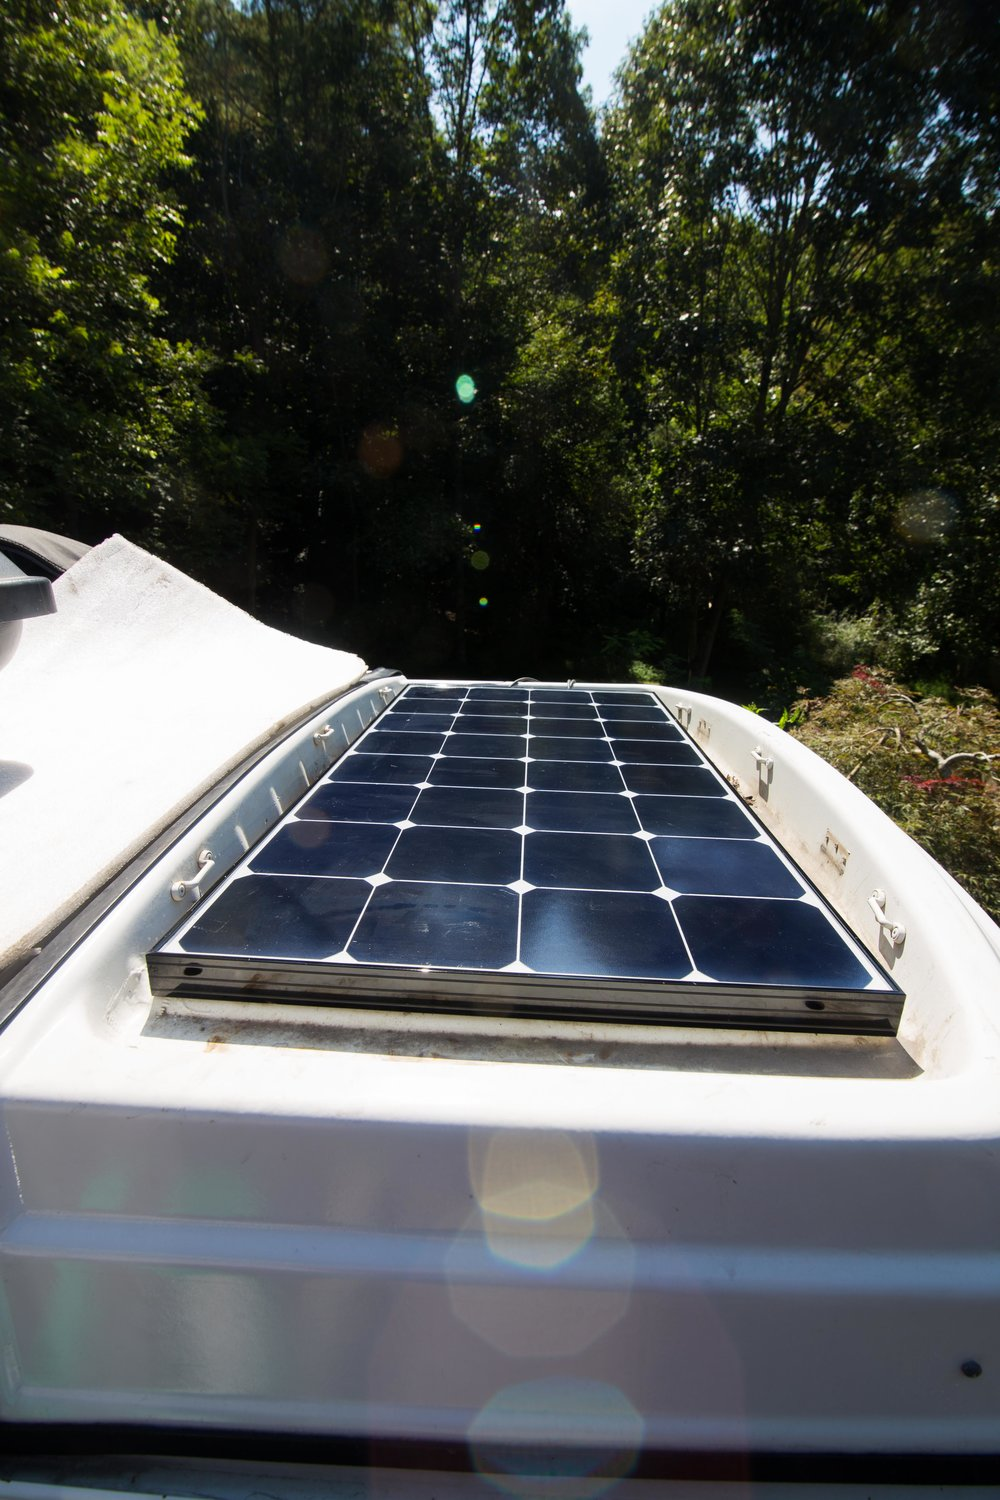 You can see here how one panel fits perfectly inside of the luggage rack. 100 Watts, getting power all the time!